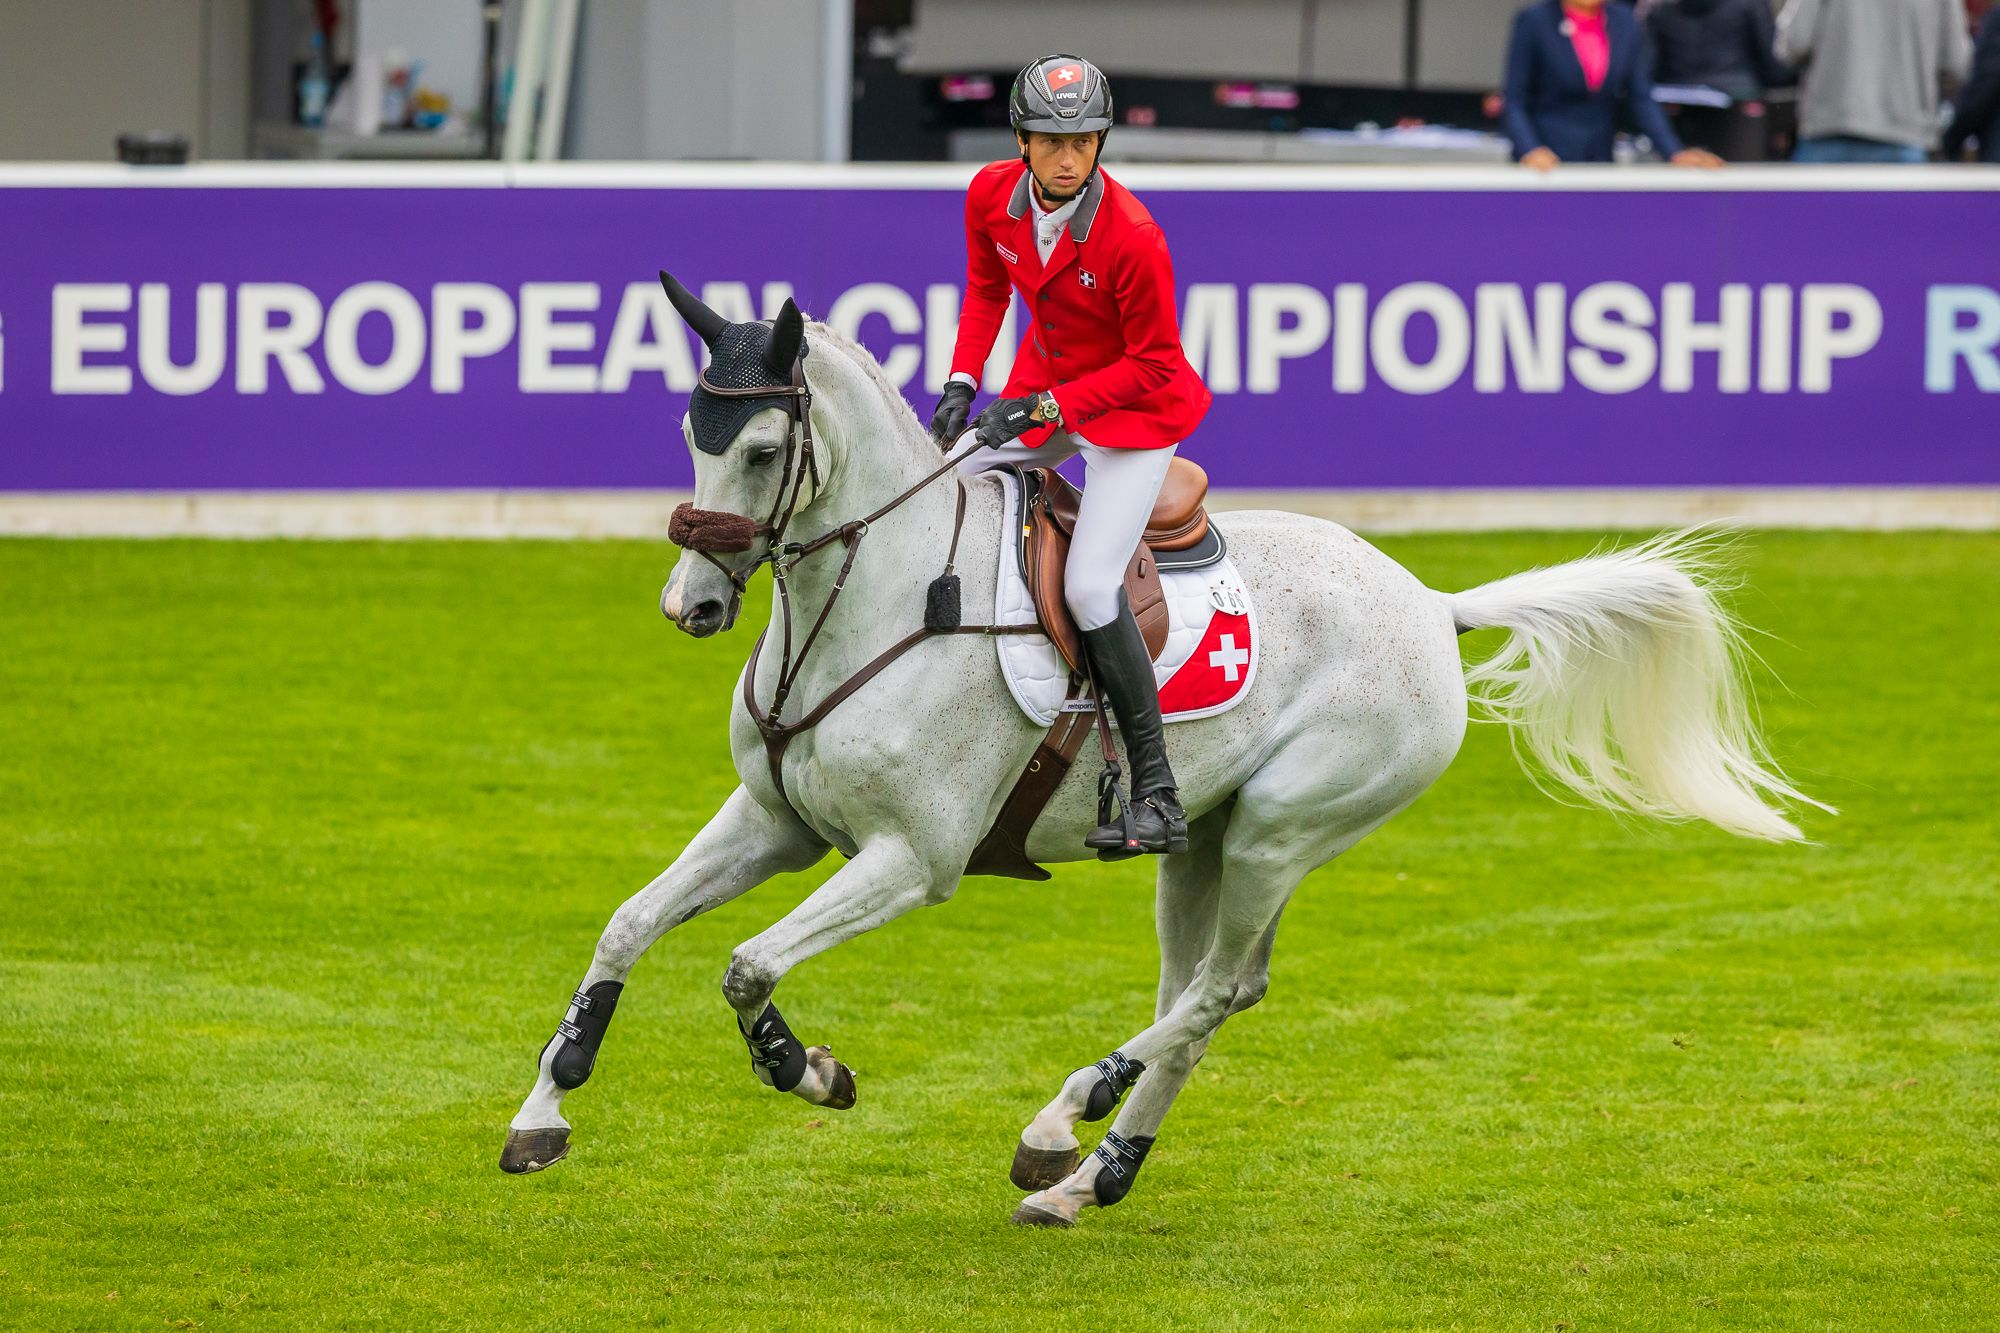 """Martin Fuchs: """"I try to stay cool and afterwards, we can get emotional"""" -  Equnews International"""